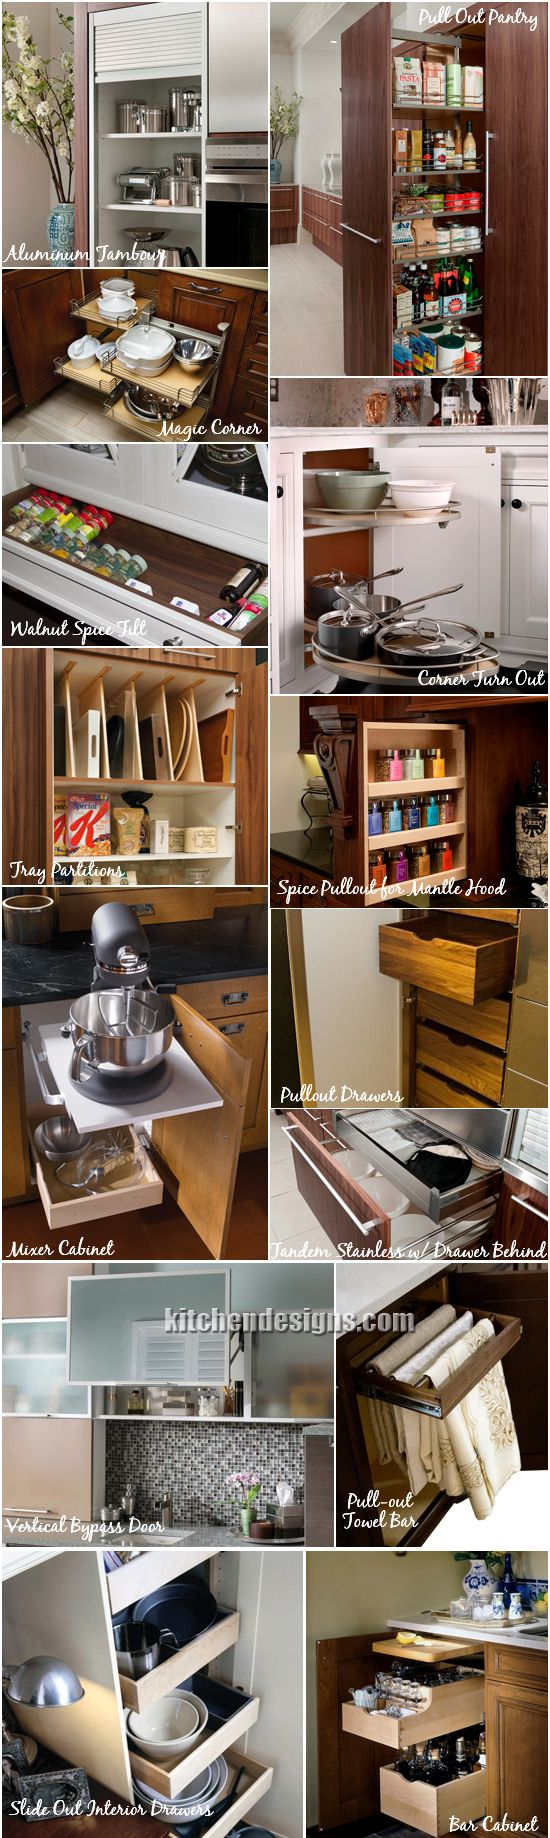 Wood Mode Cabinets 10 Best Ideas About Wood Mode On Pinterest Dream Kitchens